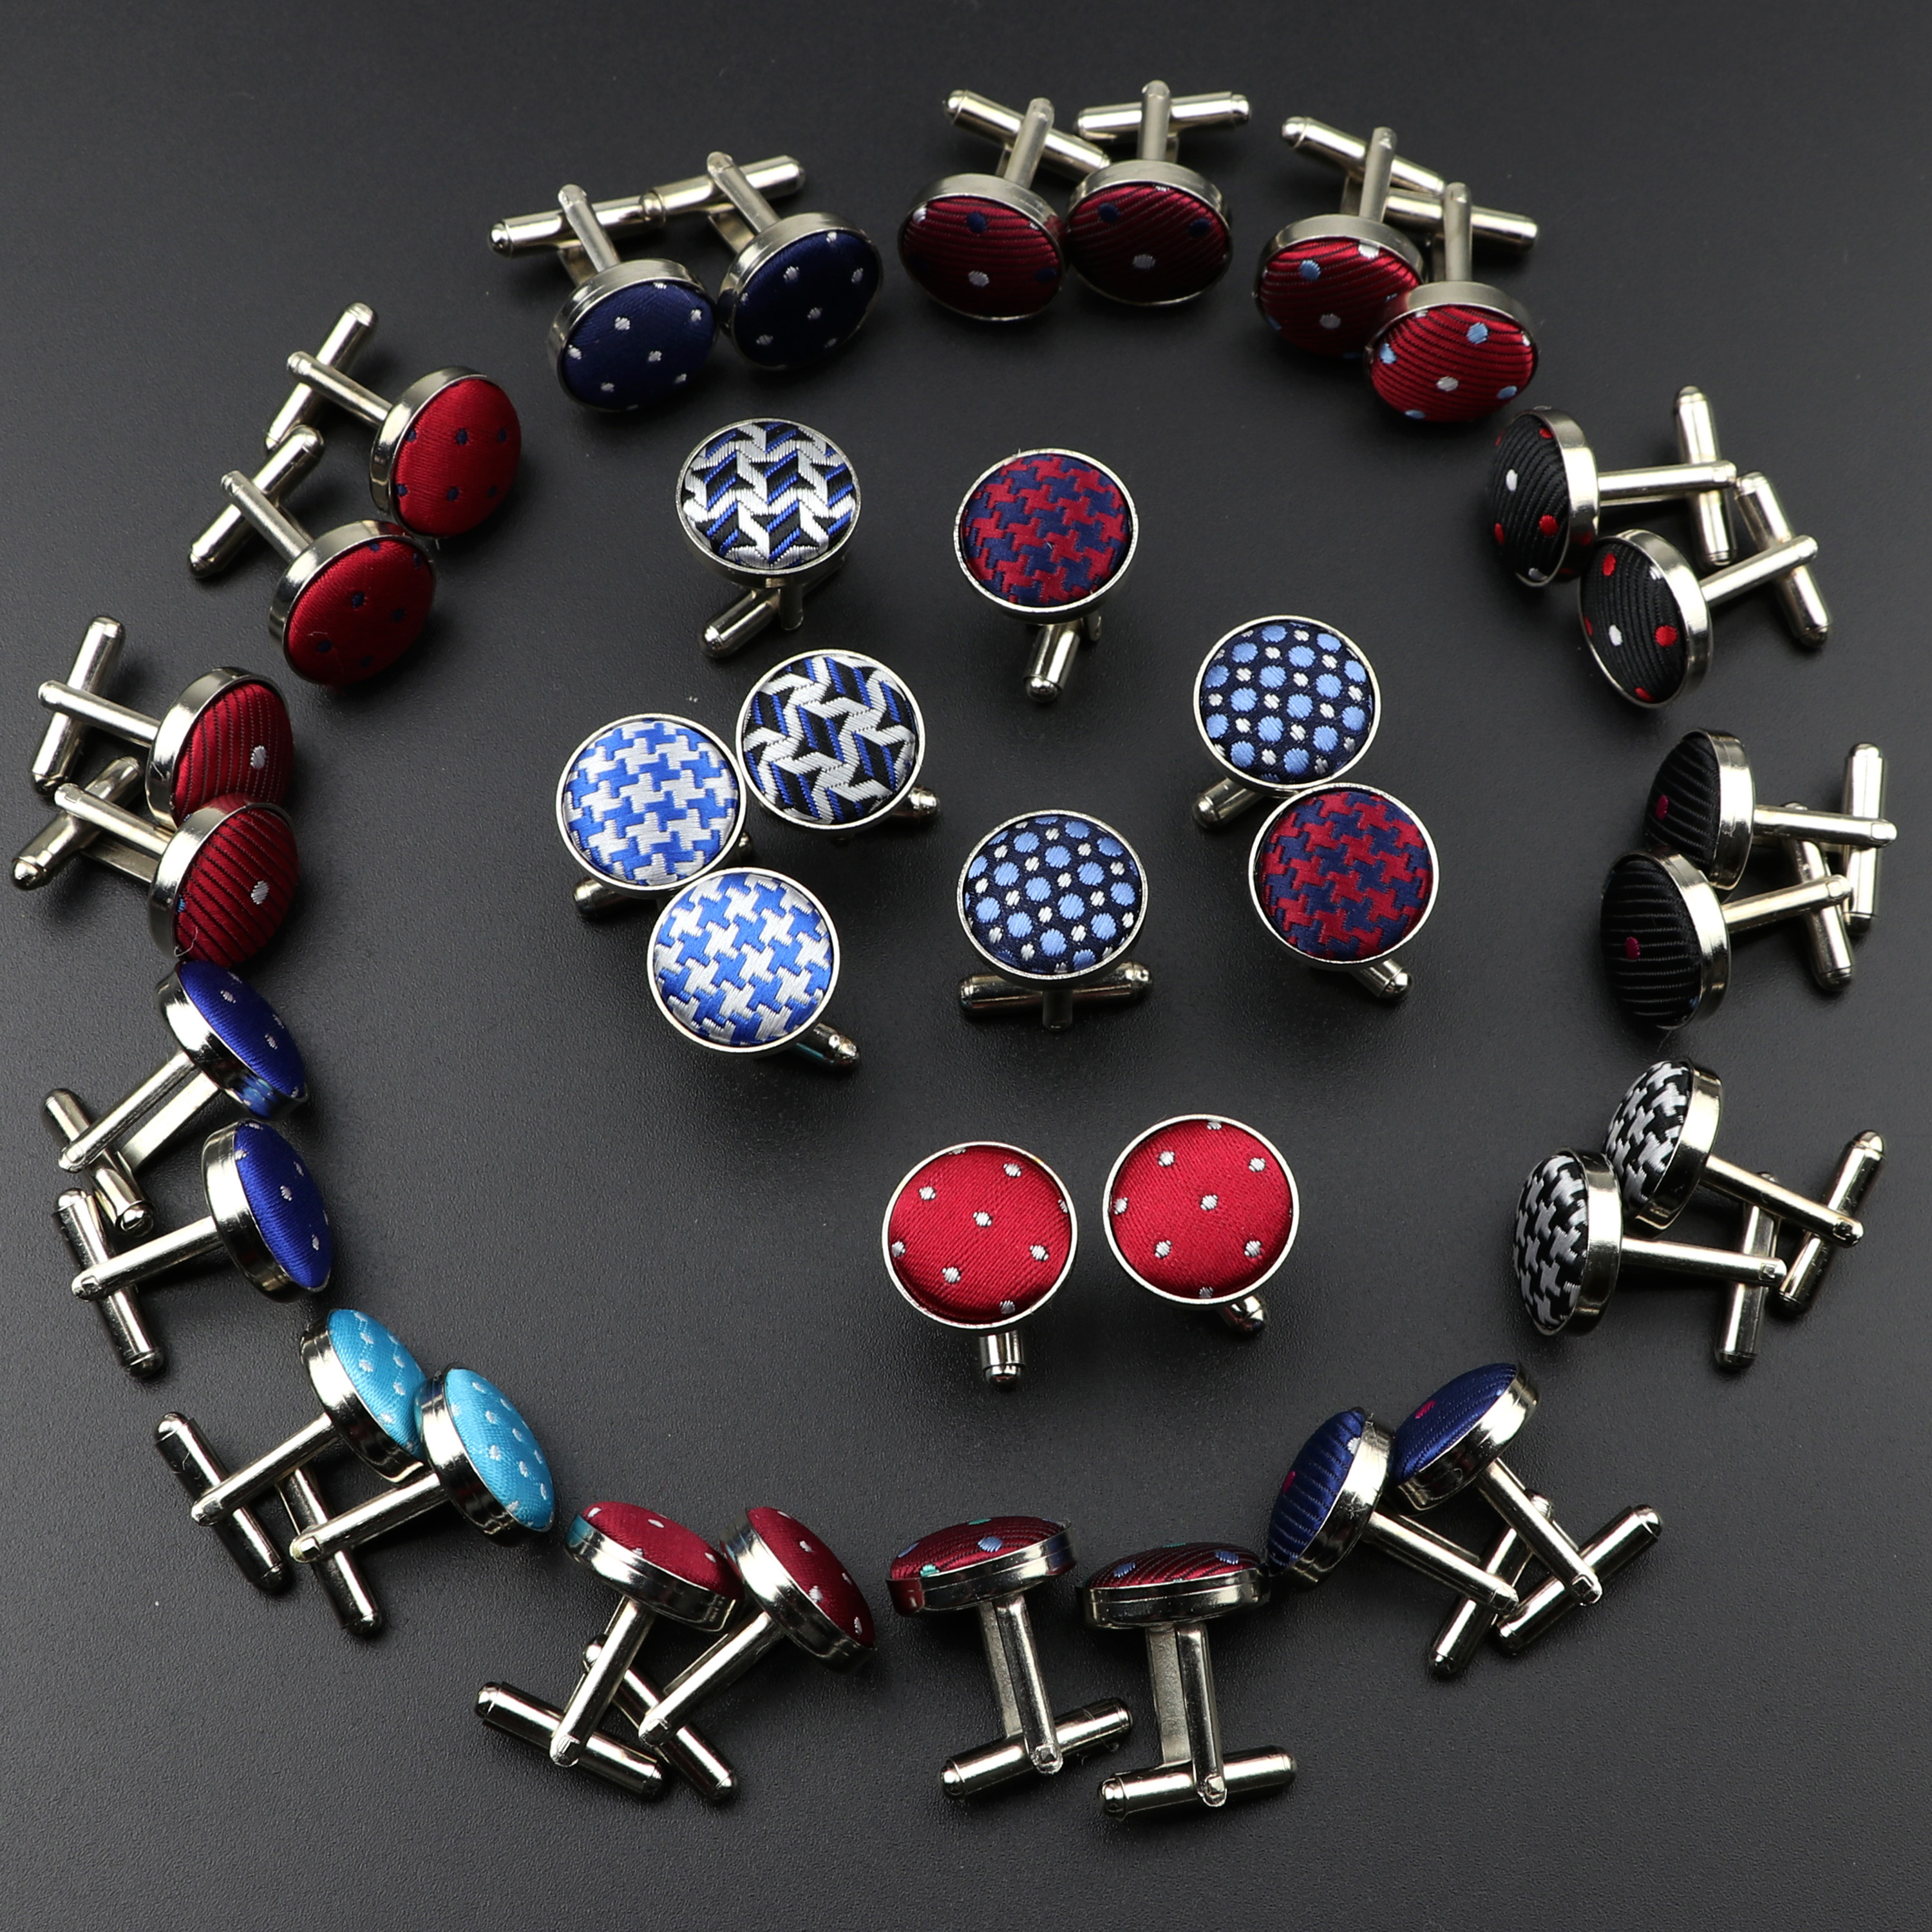 Mens Round Braided Jewelry Fashion Shirt Cufflinks For Wedding Party Suit Shirt Stripe Dot Silver Cuff Link Men Accessories Gift